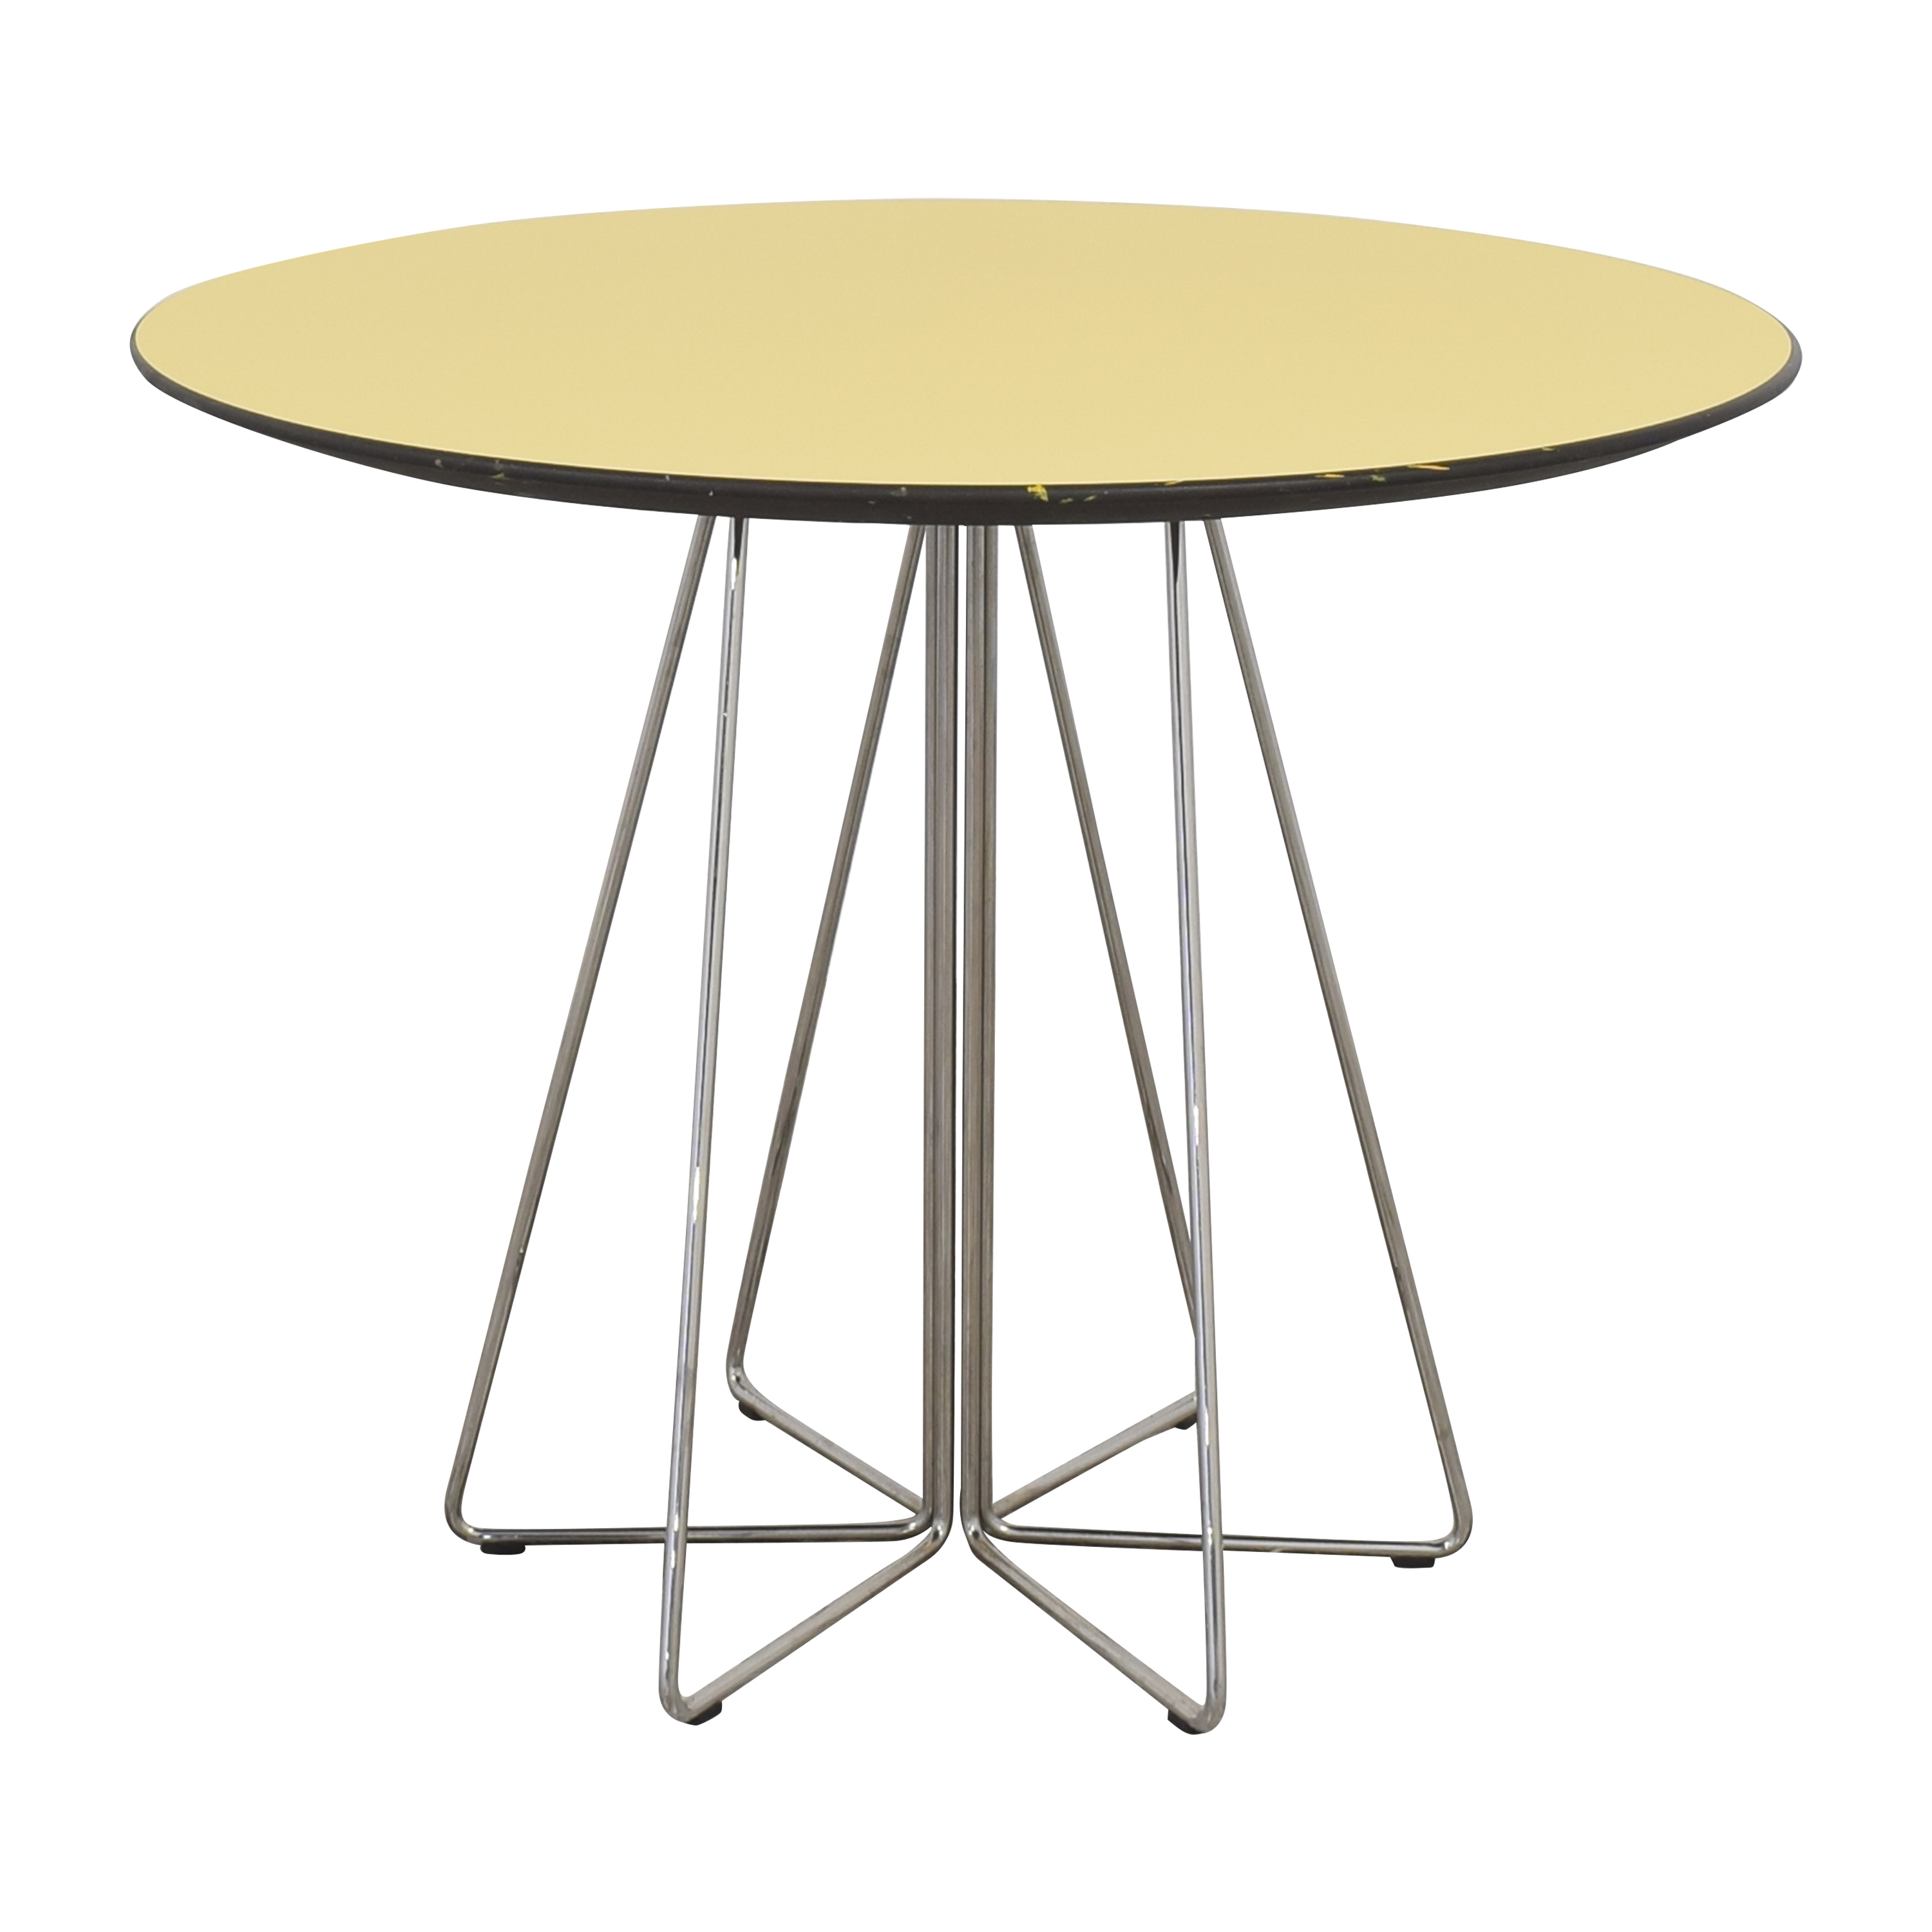 Knoll Knoll Vingelli Designs Paperclip Table pa